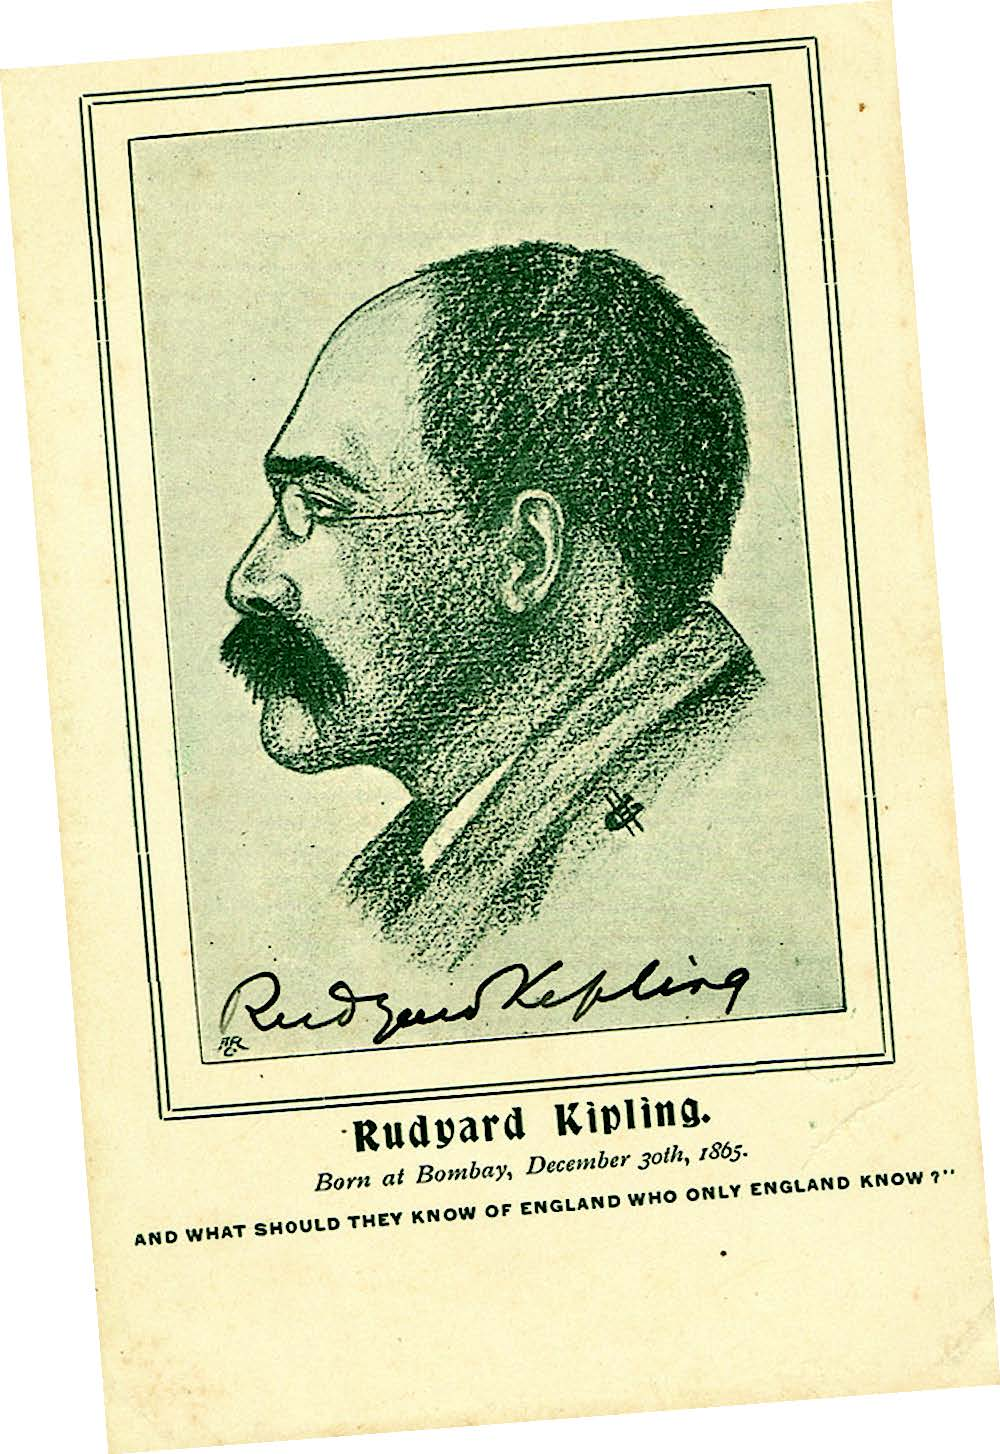 An illustratedand signed postcard ofRudyard Kipling includesa quote from his 1891poem, The English Flag.Priced £1,995 at PaulFraser Collectibles,image courtesy PaulFraser Collectibles